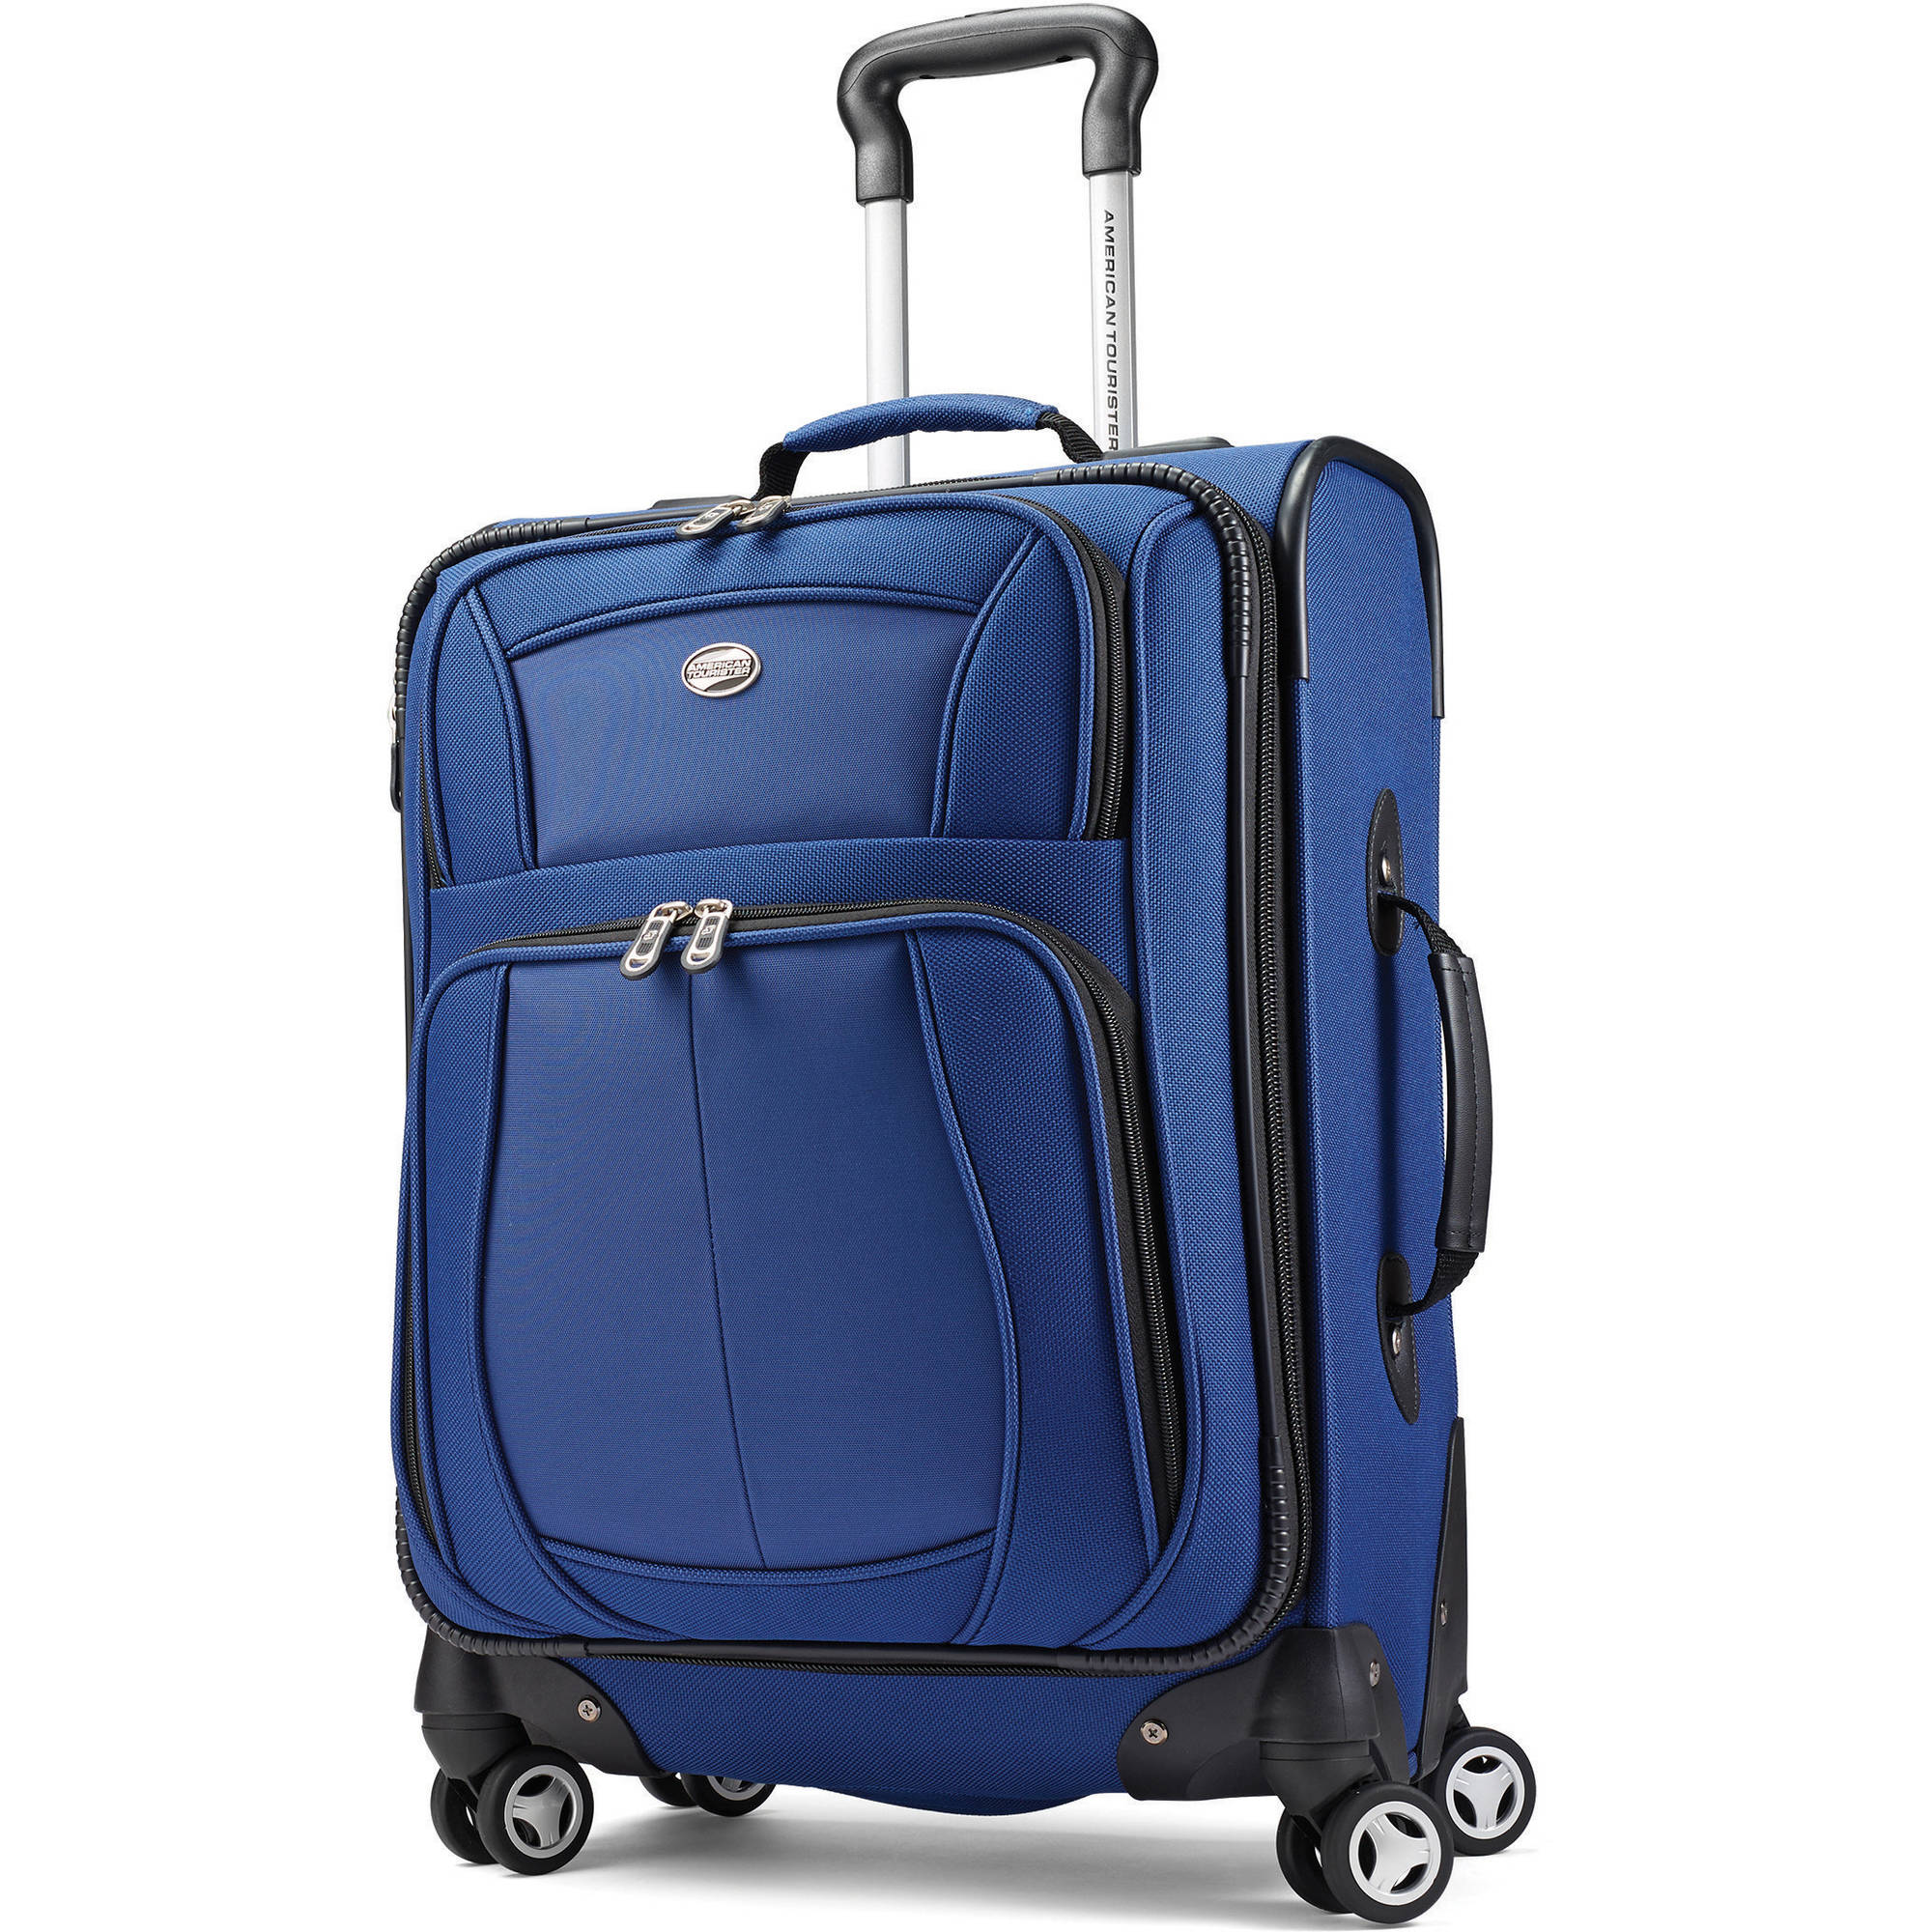 Travelers Choice Cambridge 20 in. Carry-on Lightweight Hardside ...